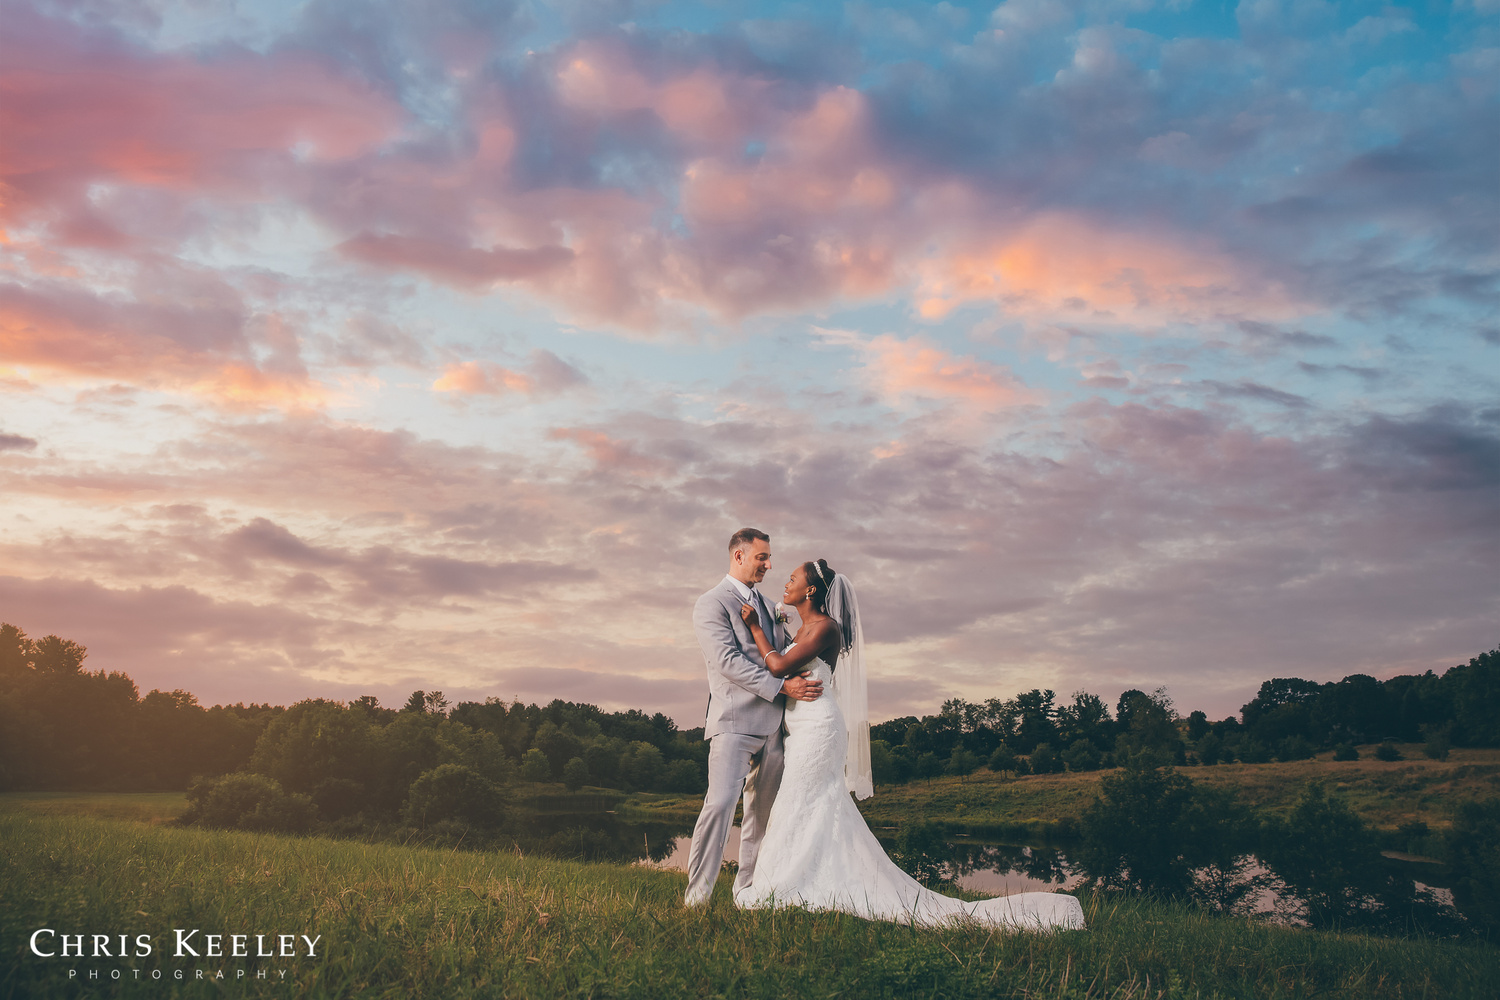 Sunset portrait by Chris Keeley